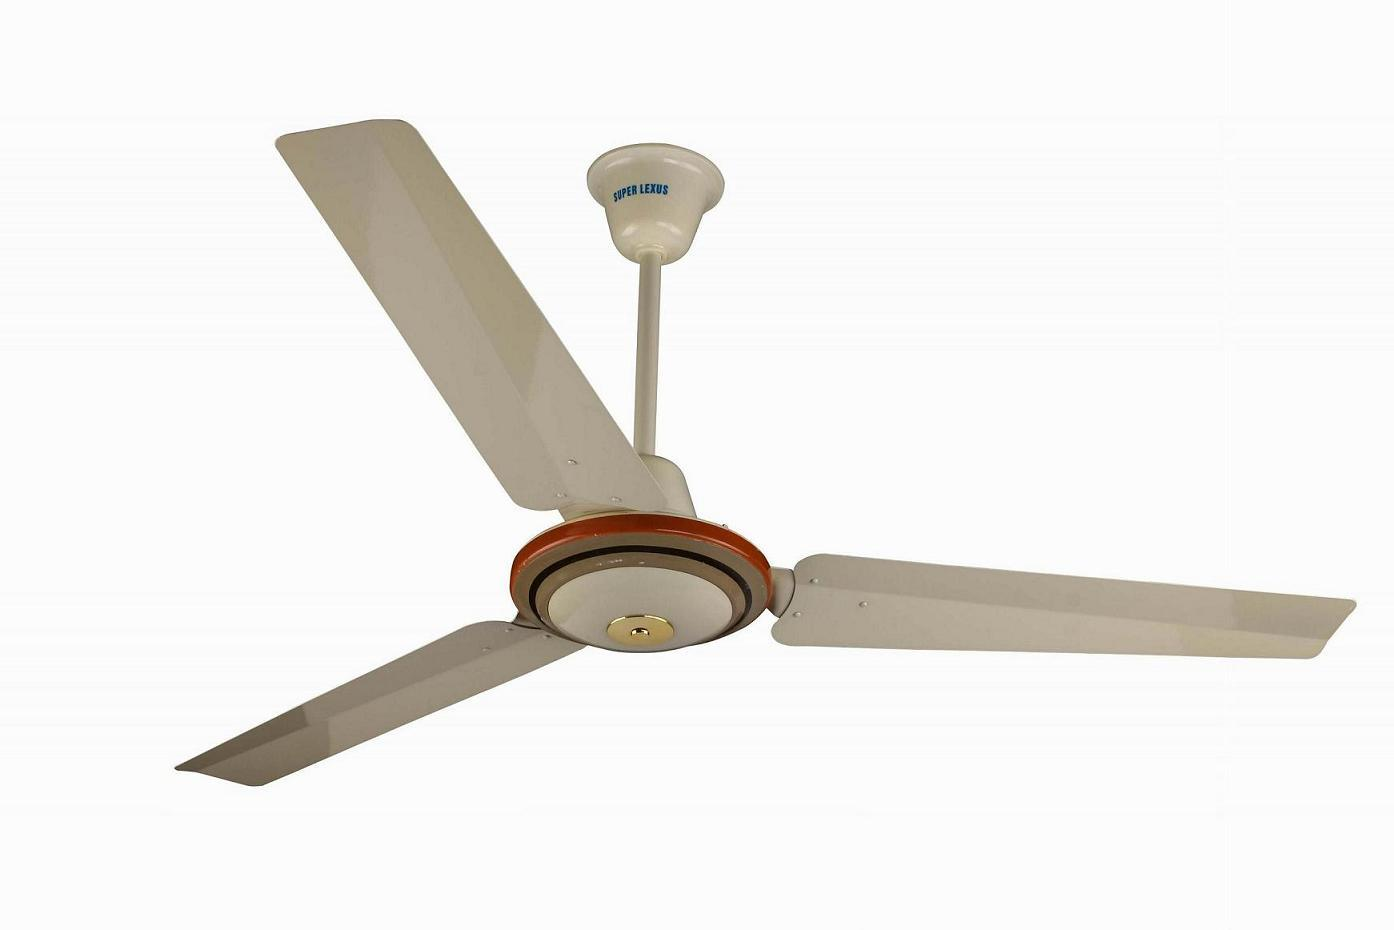 Electrical Ceiling Fans : Ceiling fan electrical parts